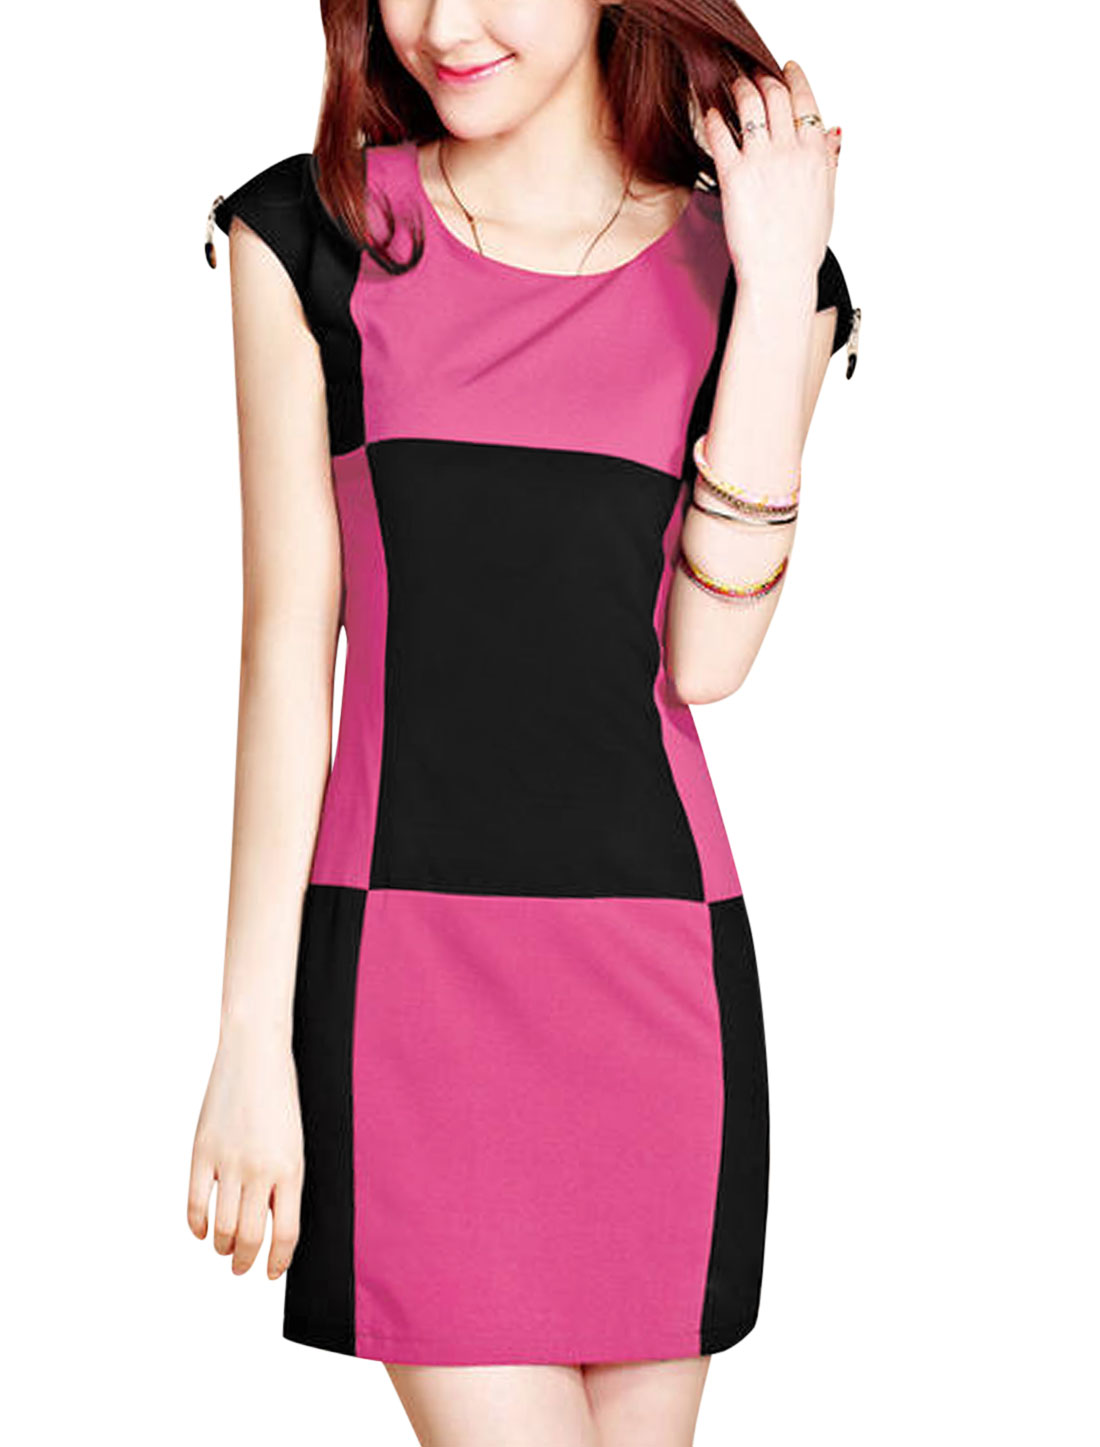 Lady Elegant Cap Sleeve Check Colorblock Sheath Dress Black Fuchsia M